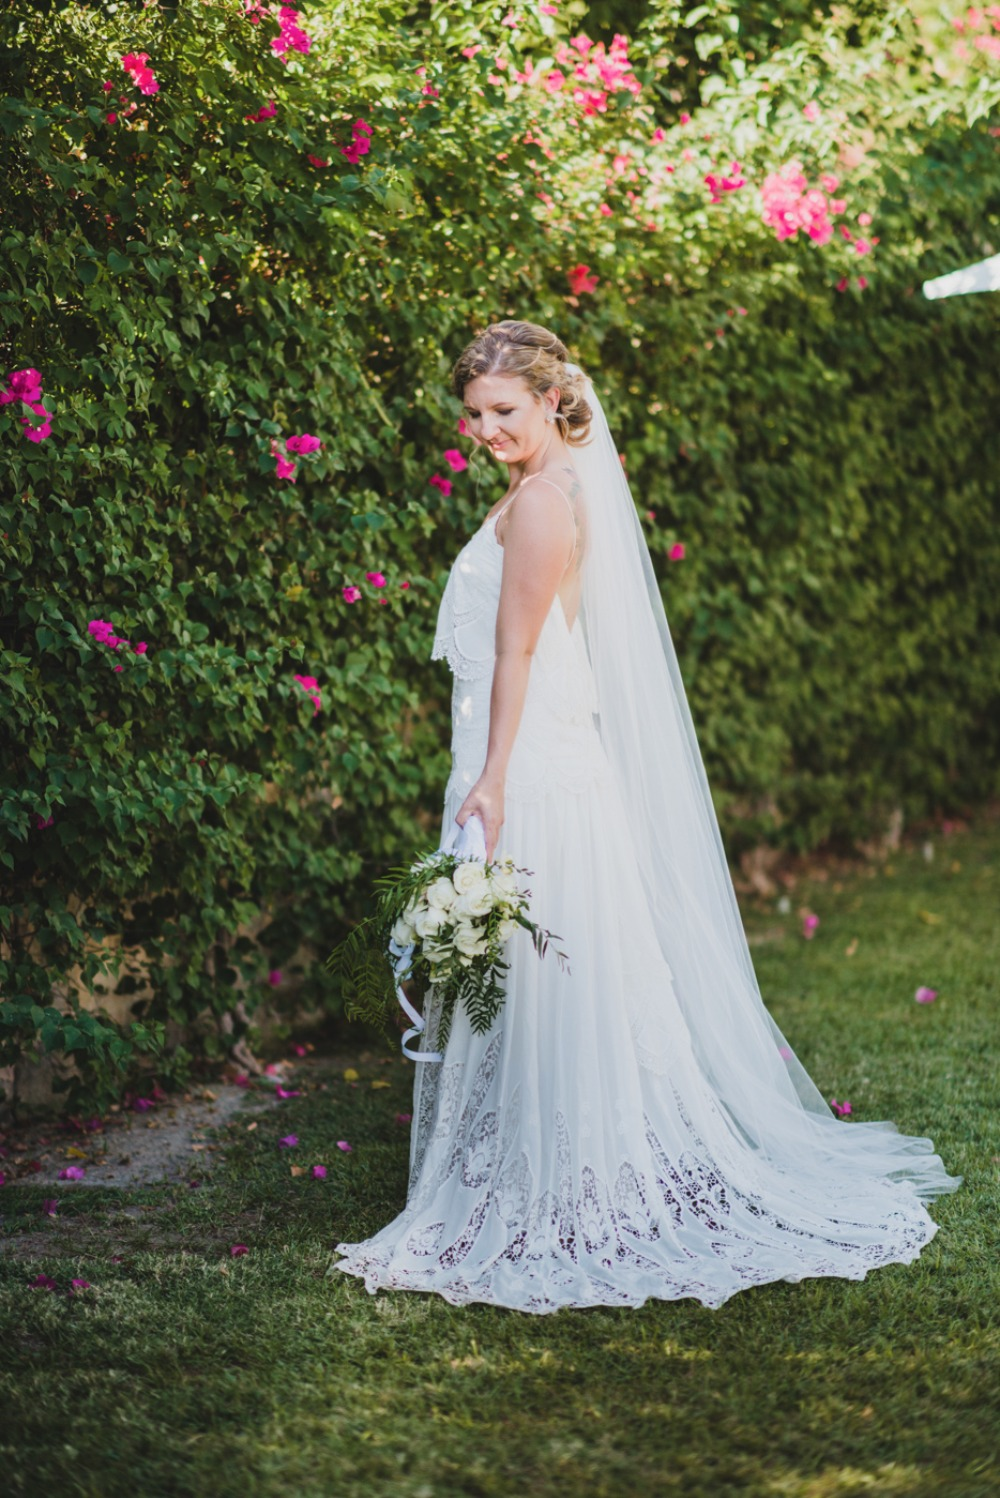 Stunning lace bridal gown